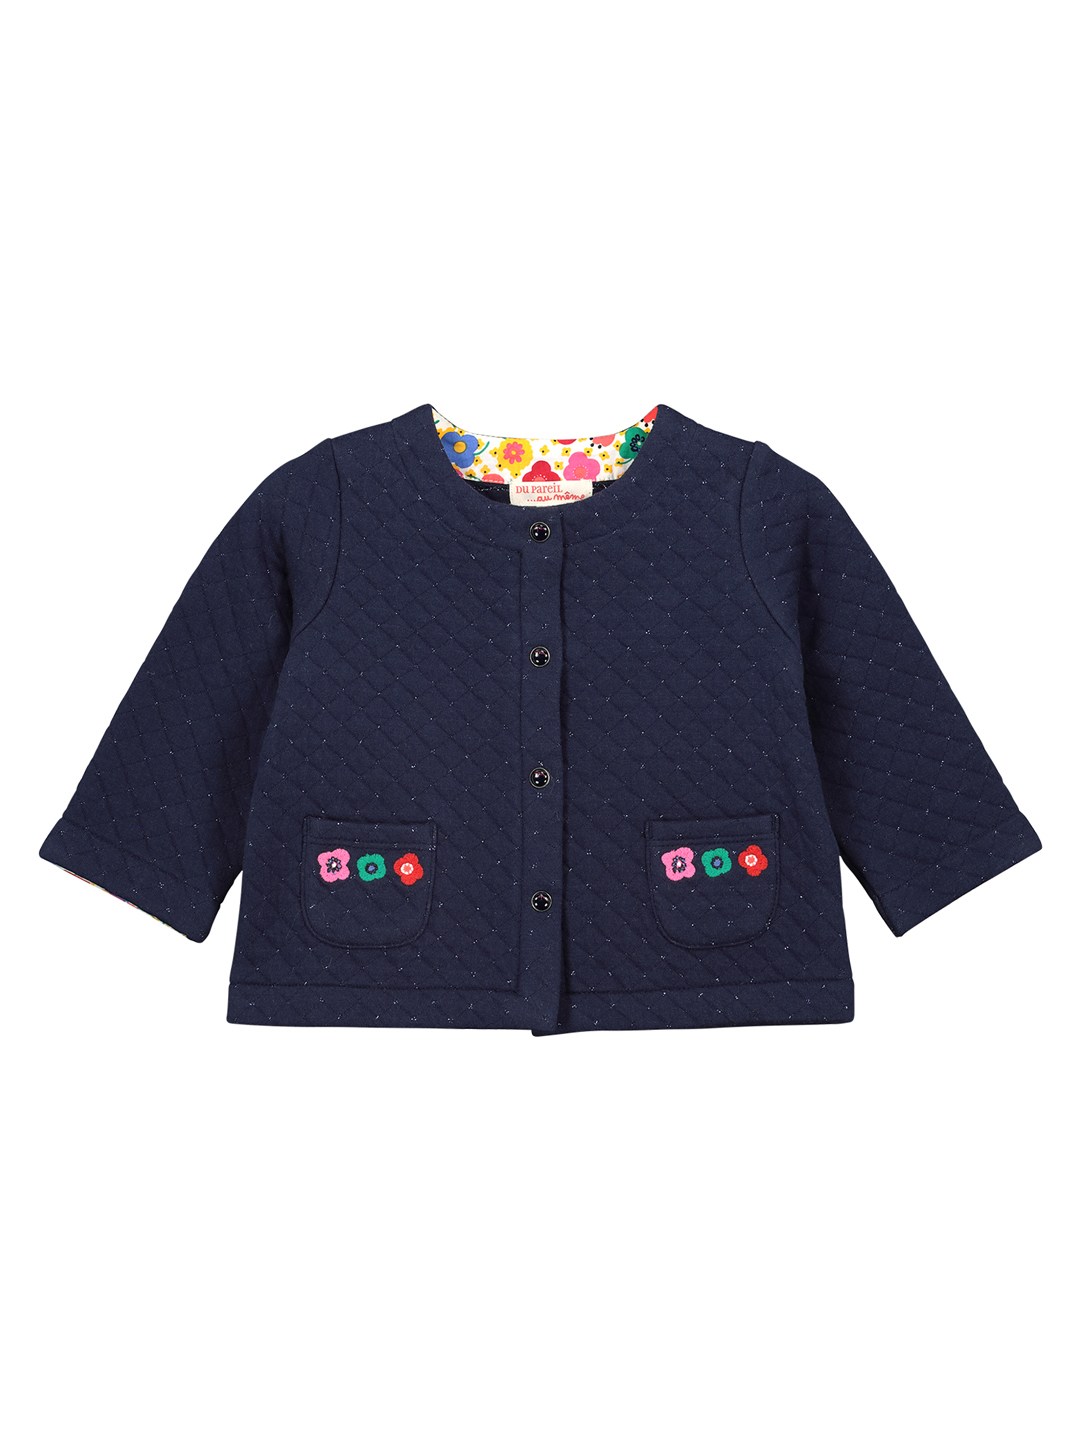 Ficocar1 Baby Girls Navy Lined Cardigan